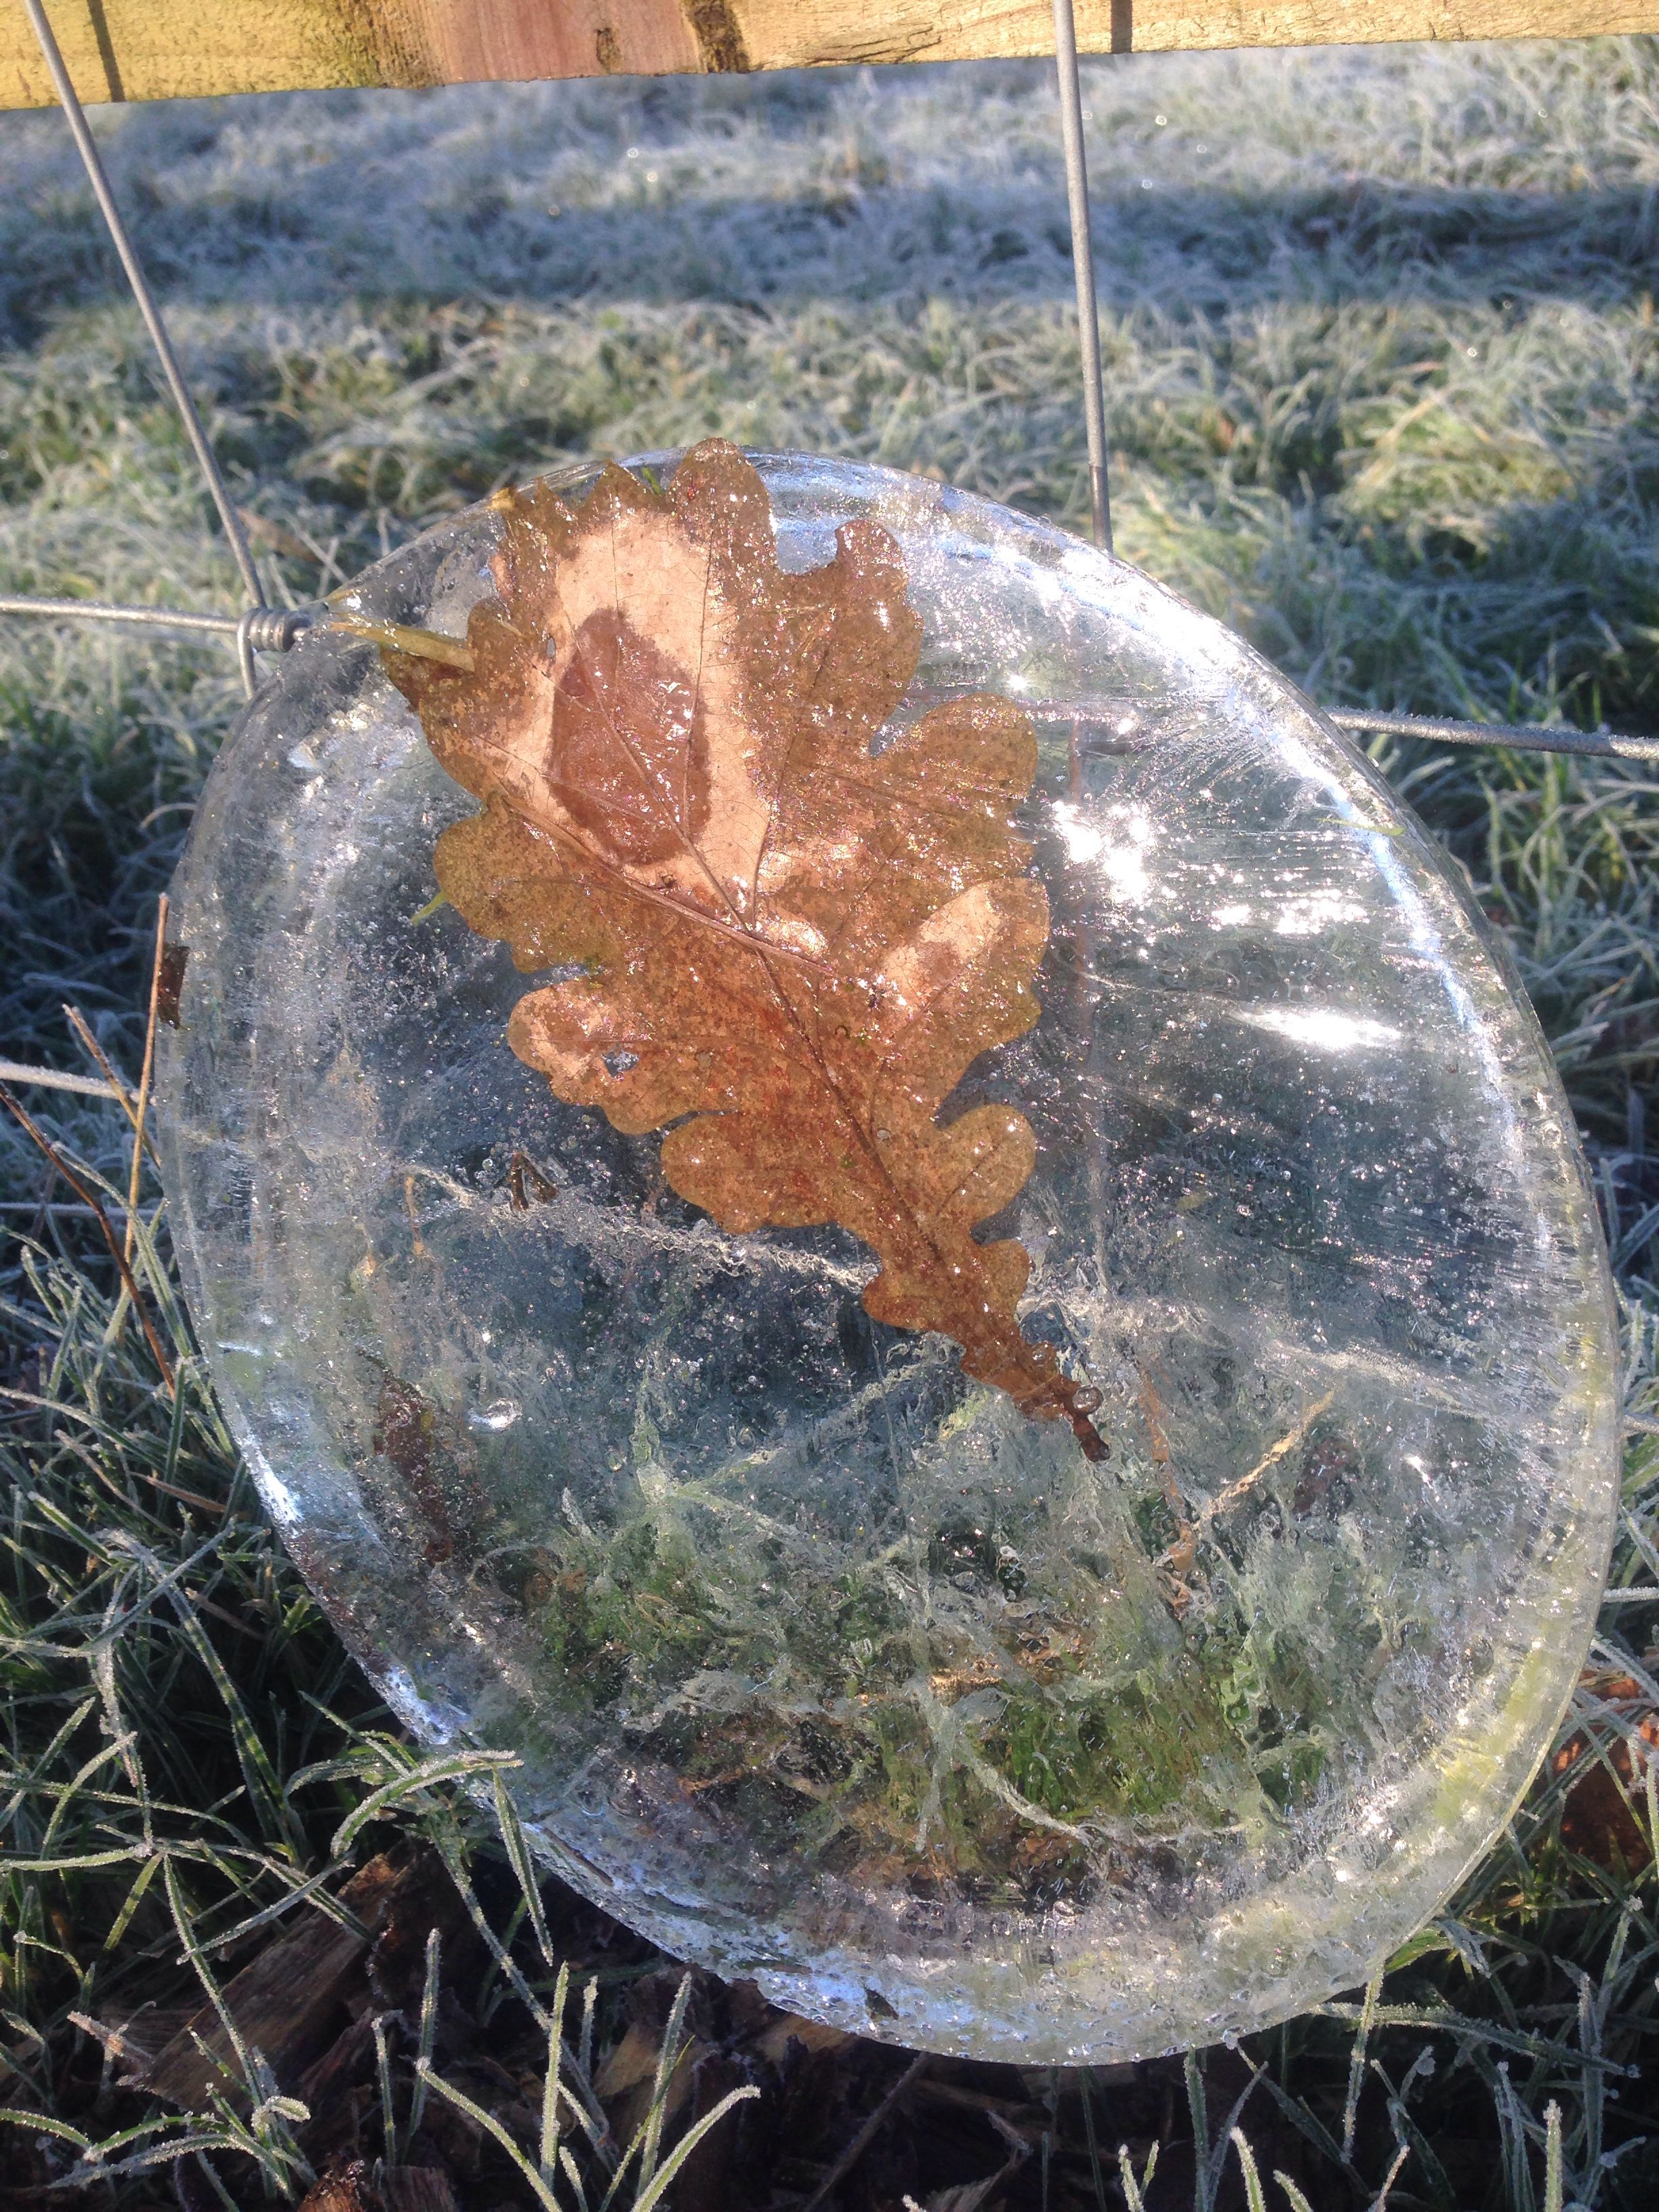 Leaf suspended in ice from the dogs drinking bowl. Dec 6th 2014